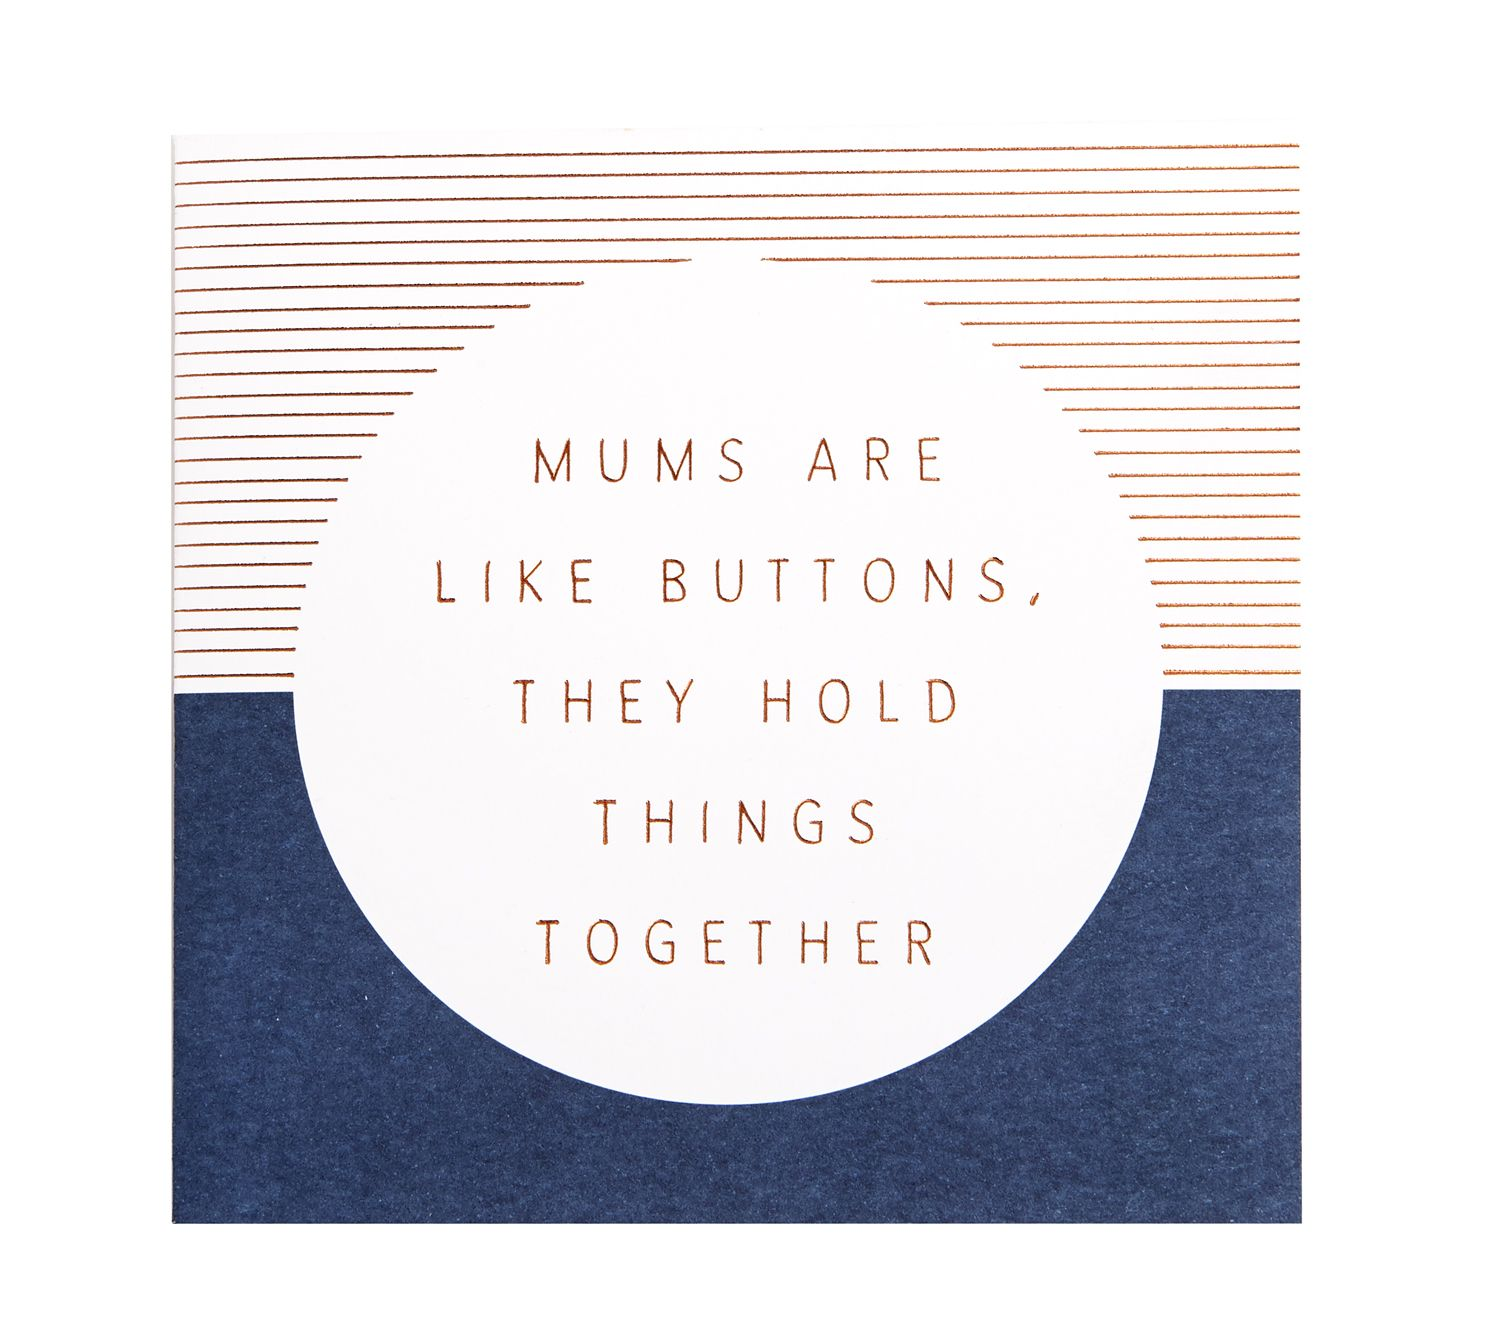 Mums are like buttons they hold things together greeting card for